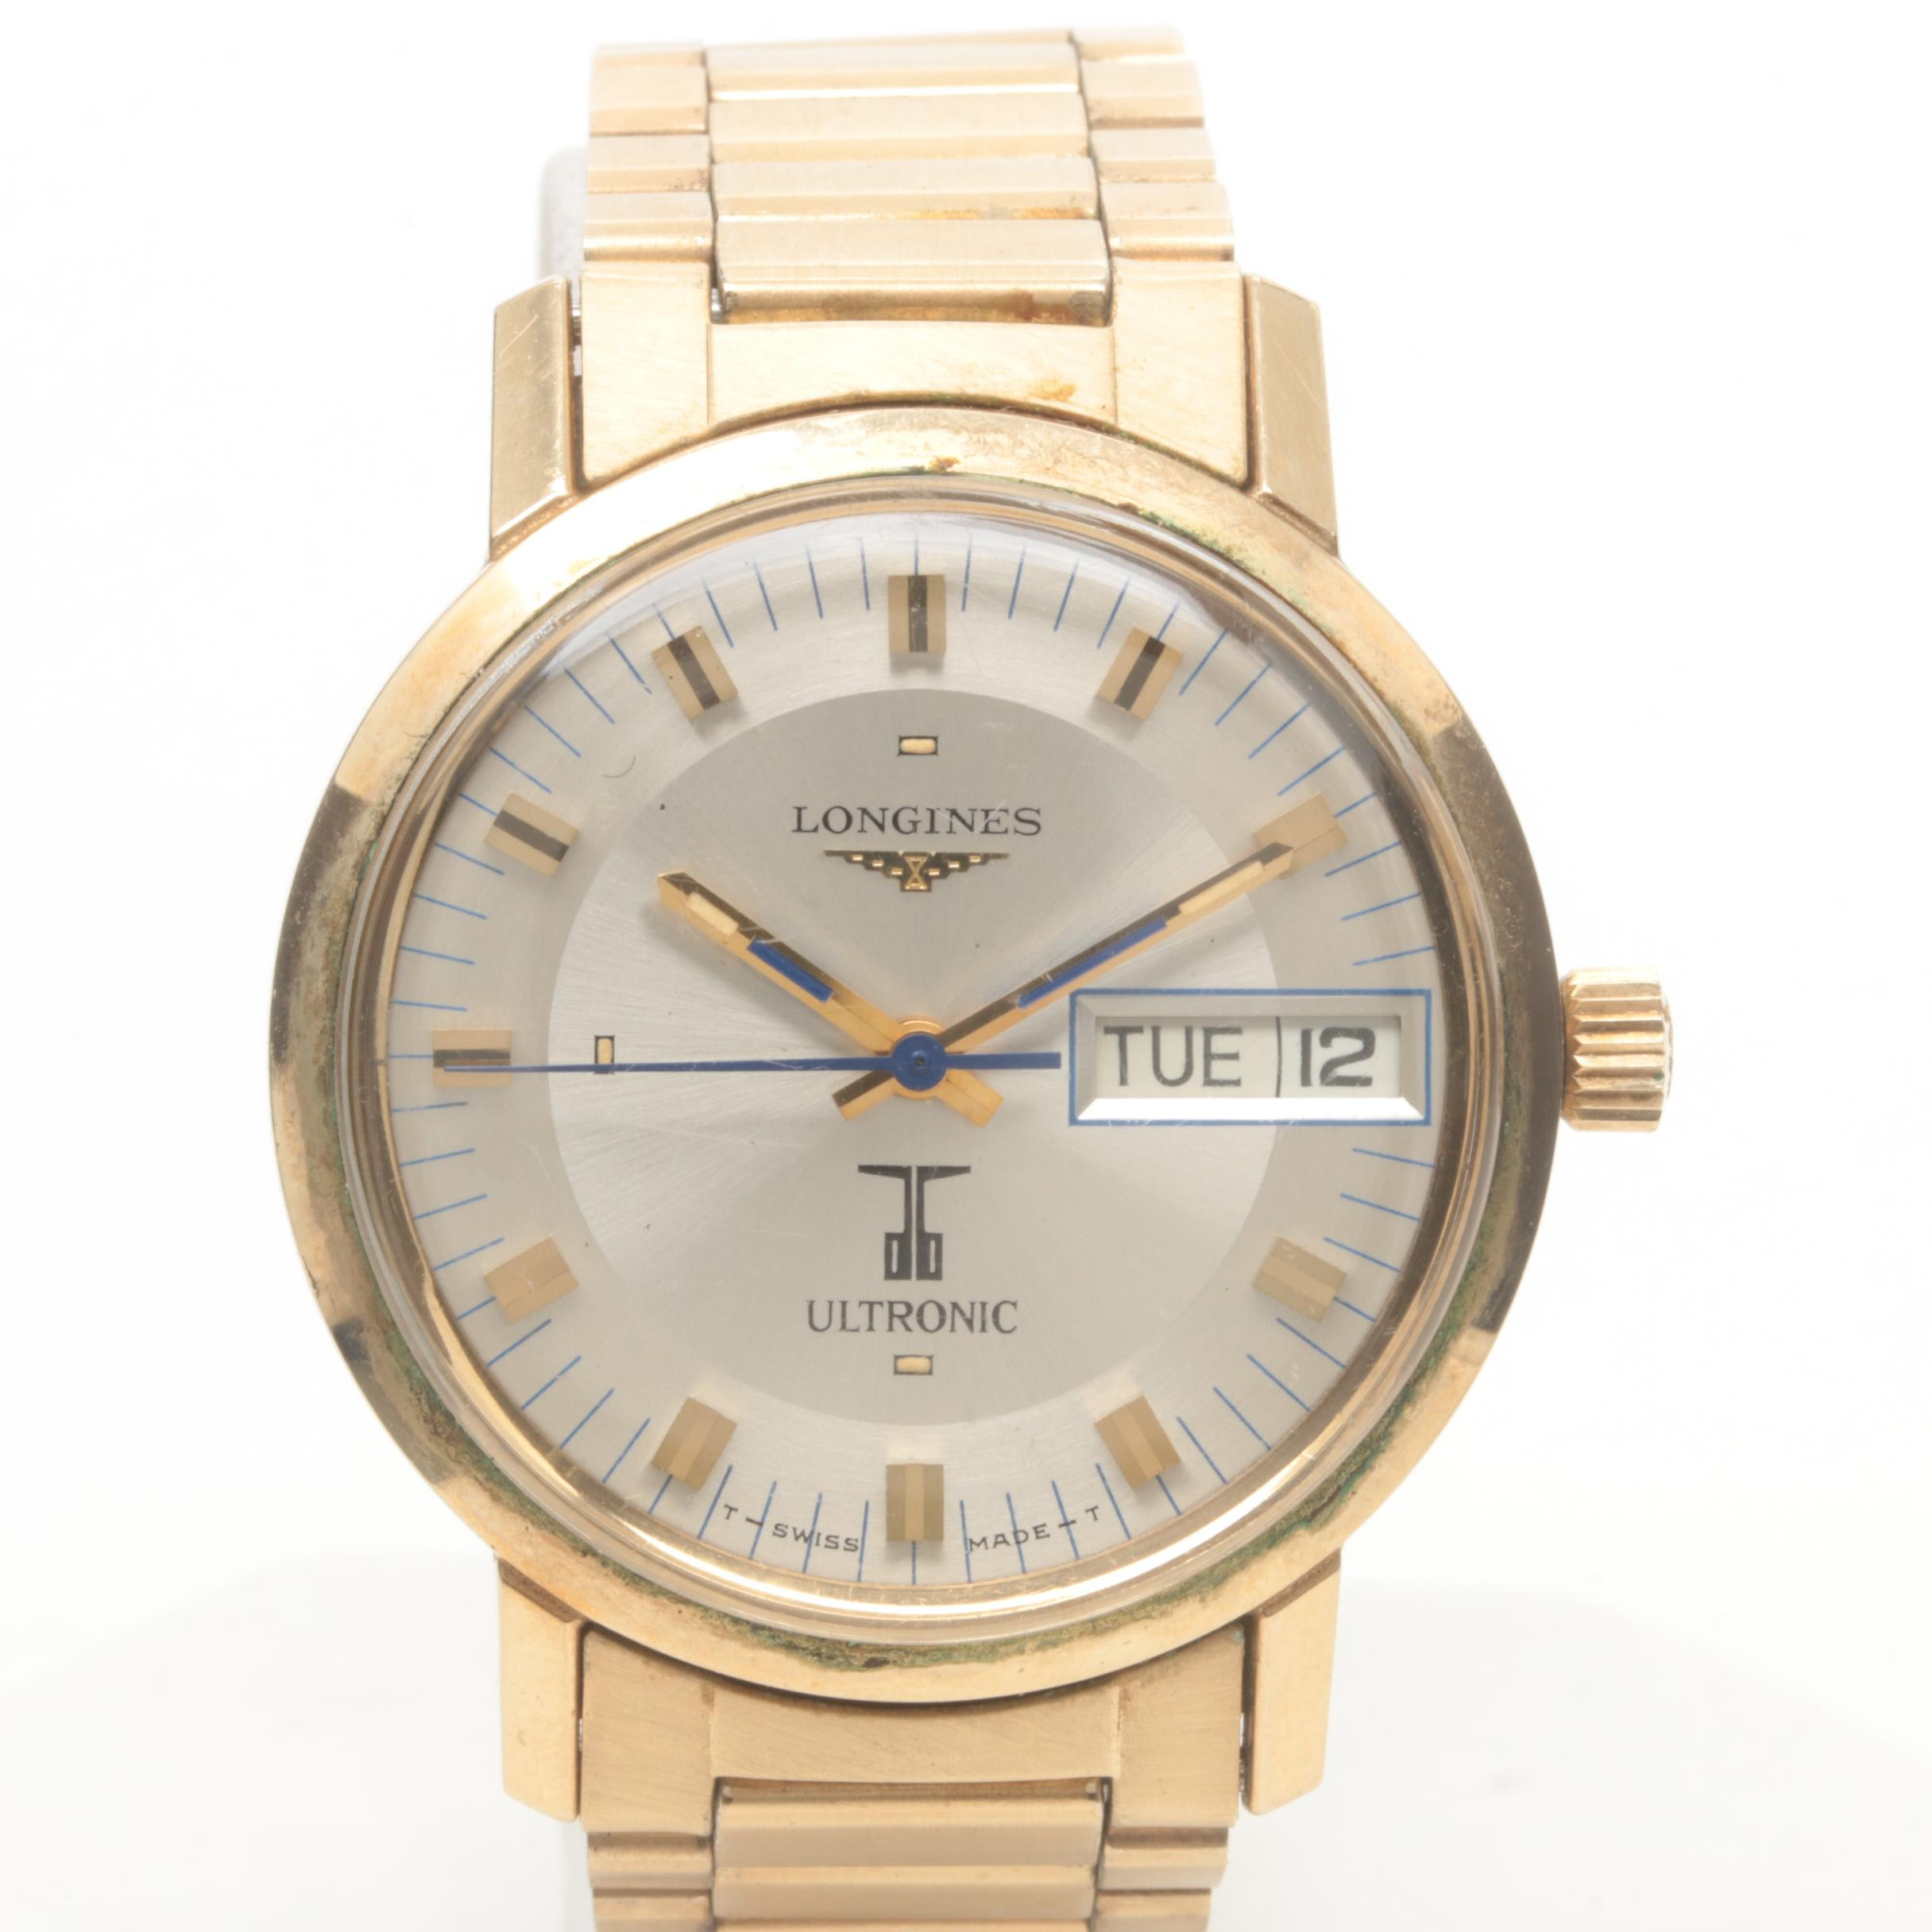 Longines Ultronic Gold Filled and Stainless Steel Wristwatch